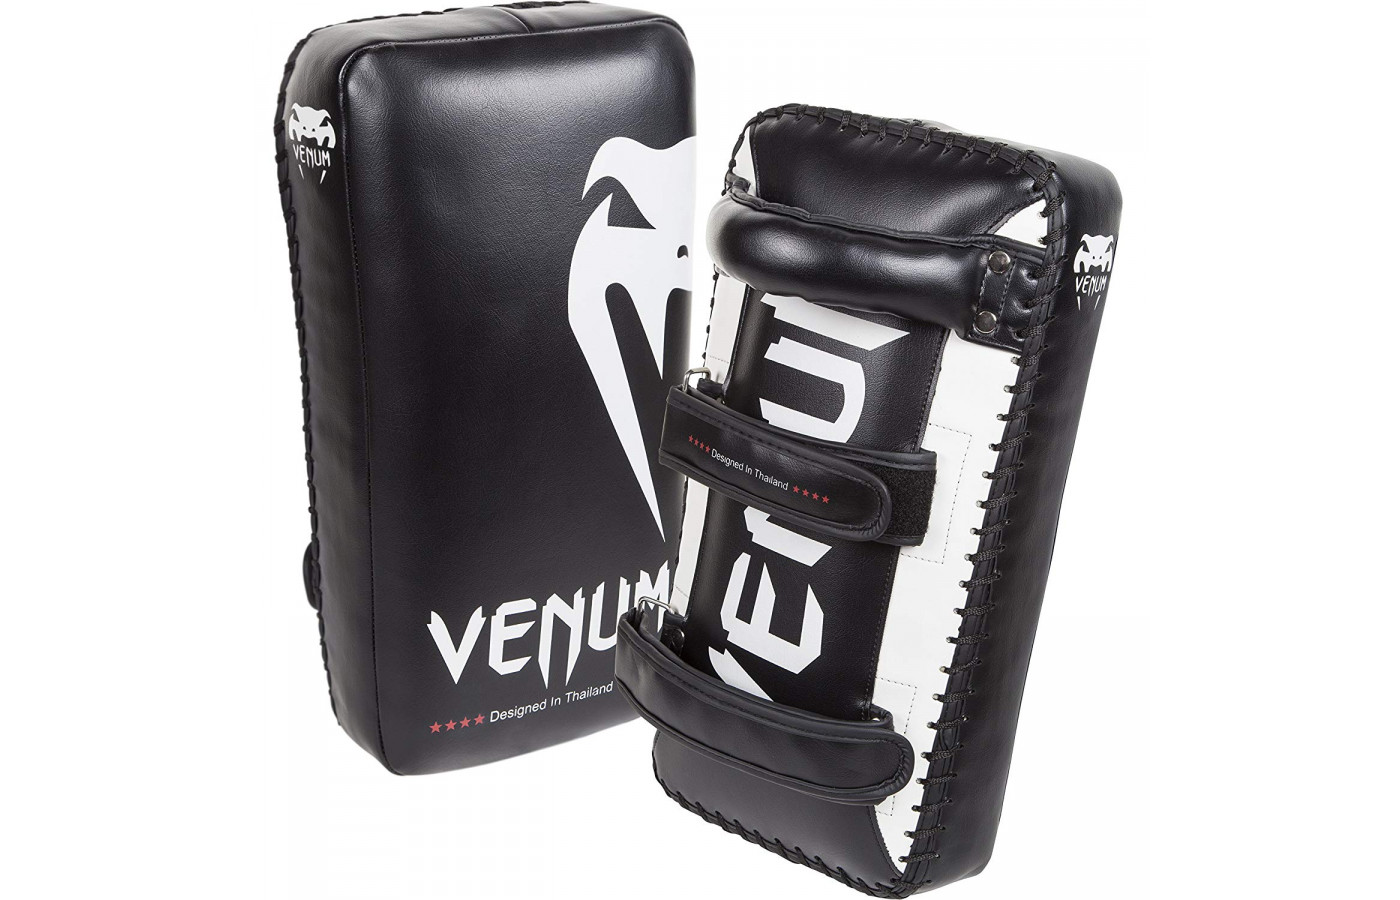 venum giant front and back